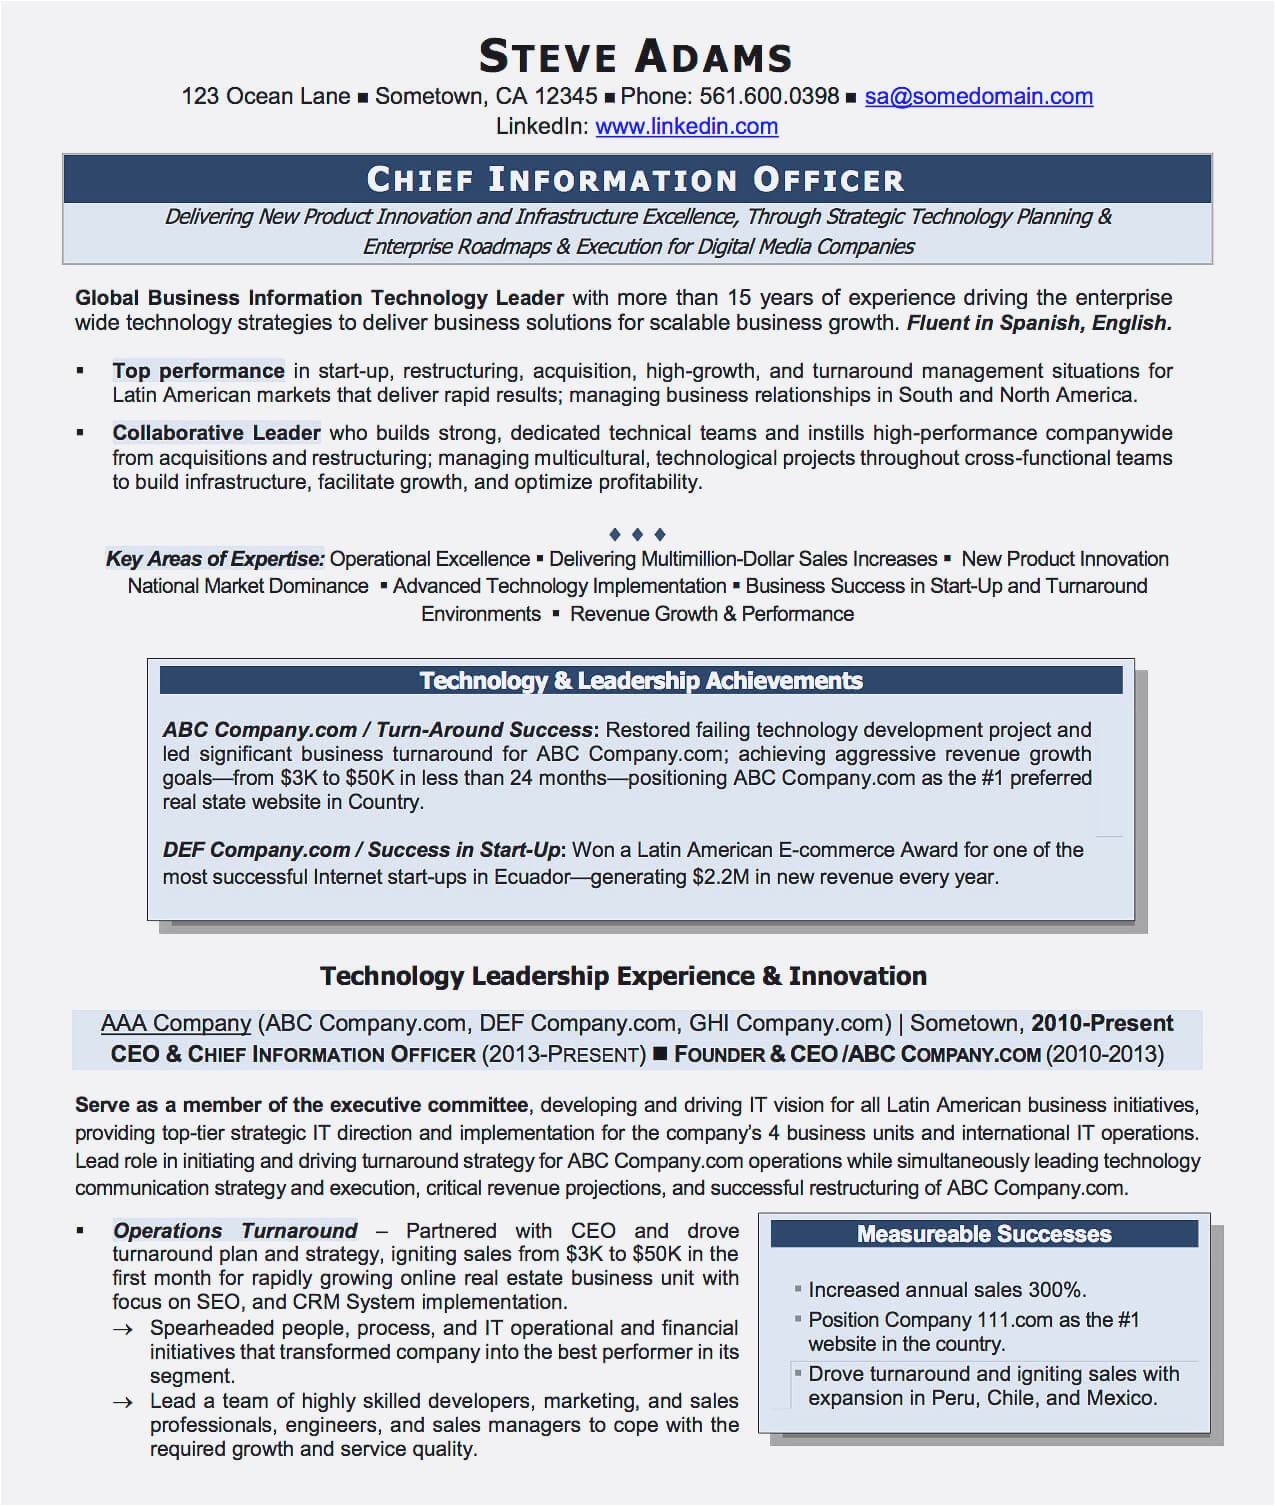 Marissa Mayer Resume Template Download - Marissa Mayer Resume Best Modern Minimalist Resume Template E